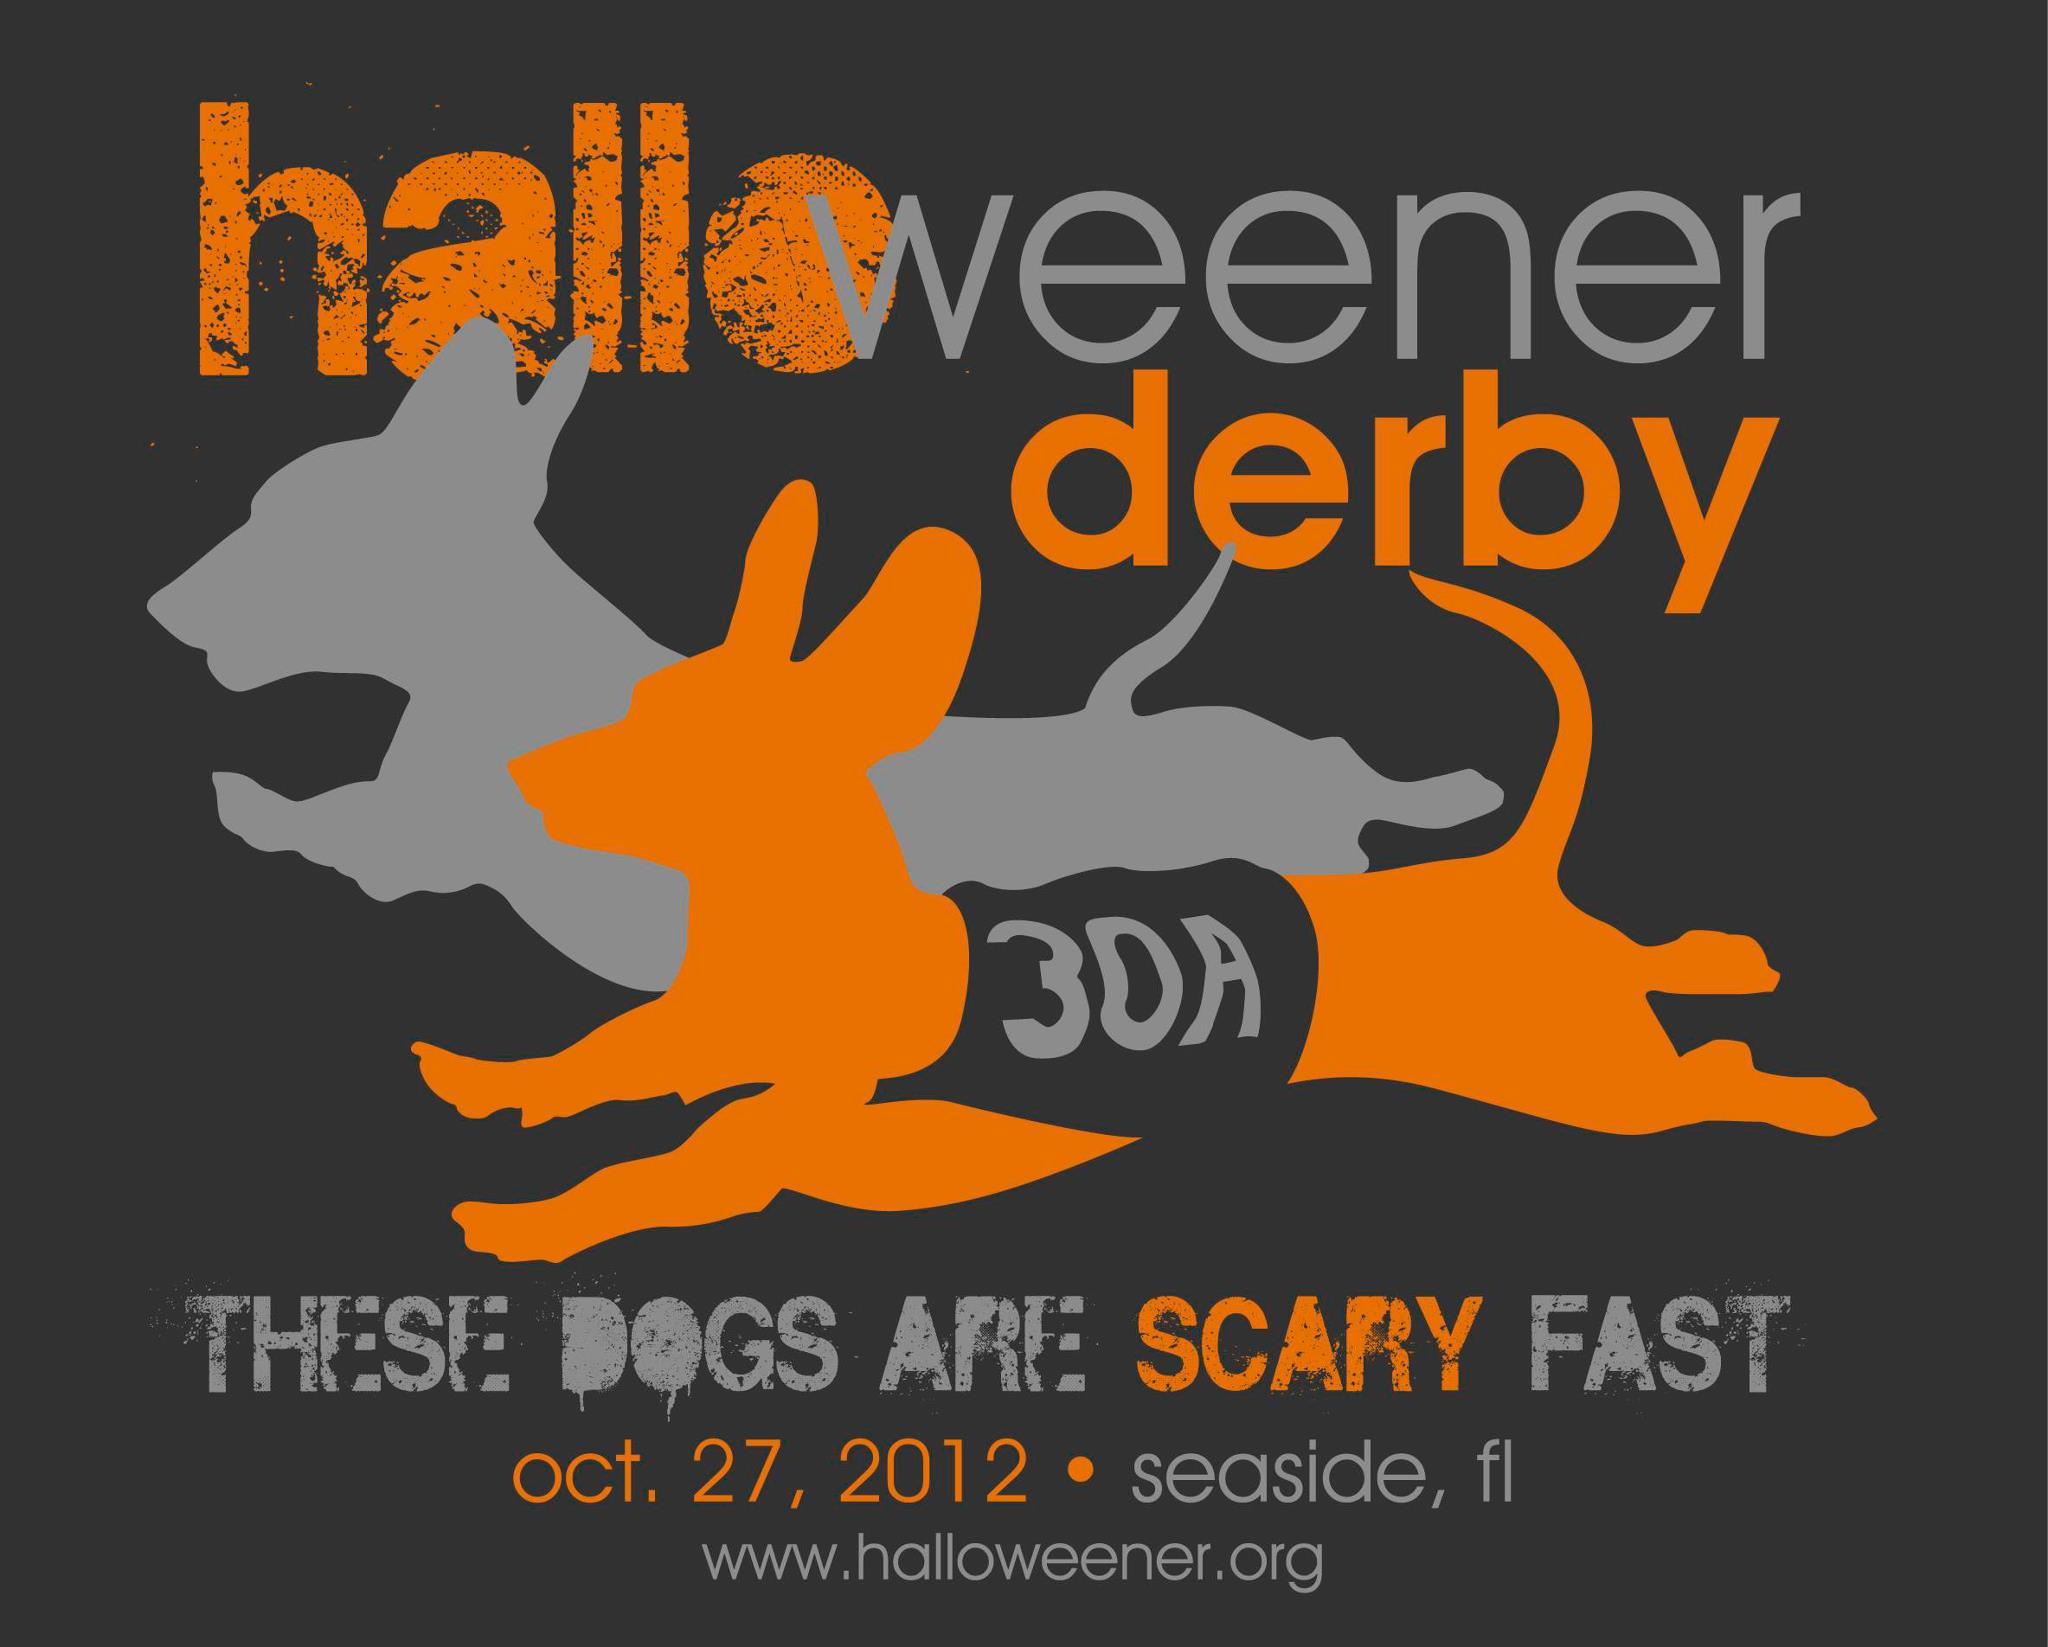 Halloweener Derby Day in Seaside